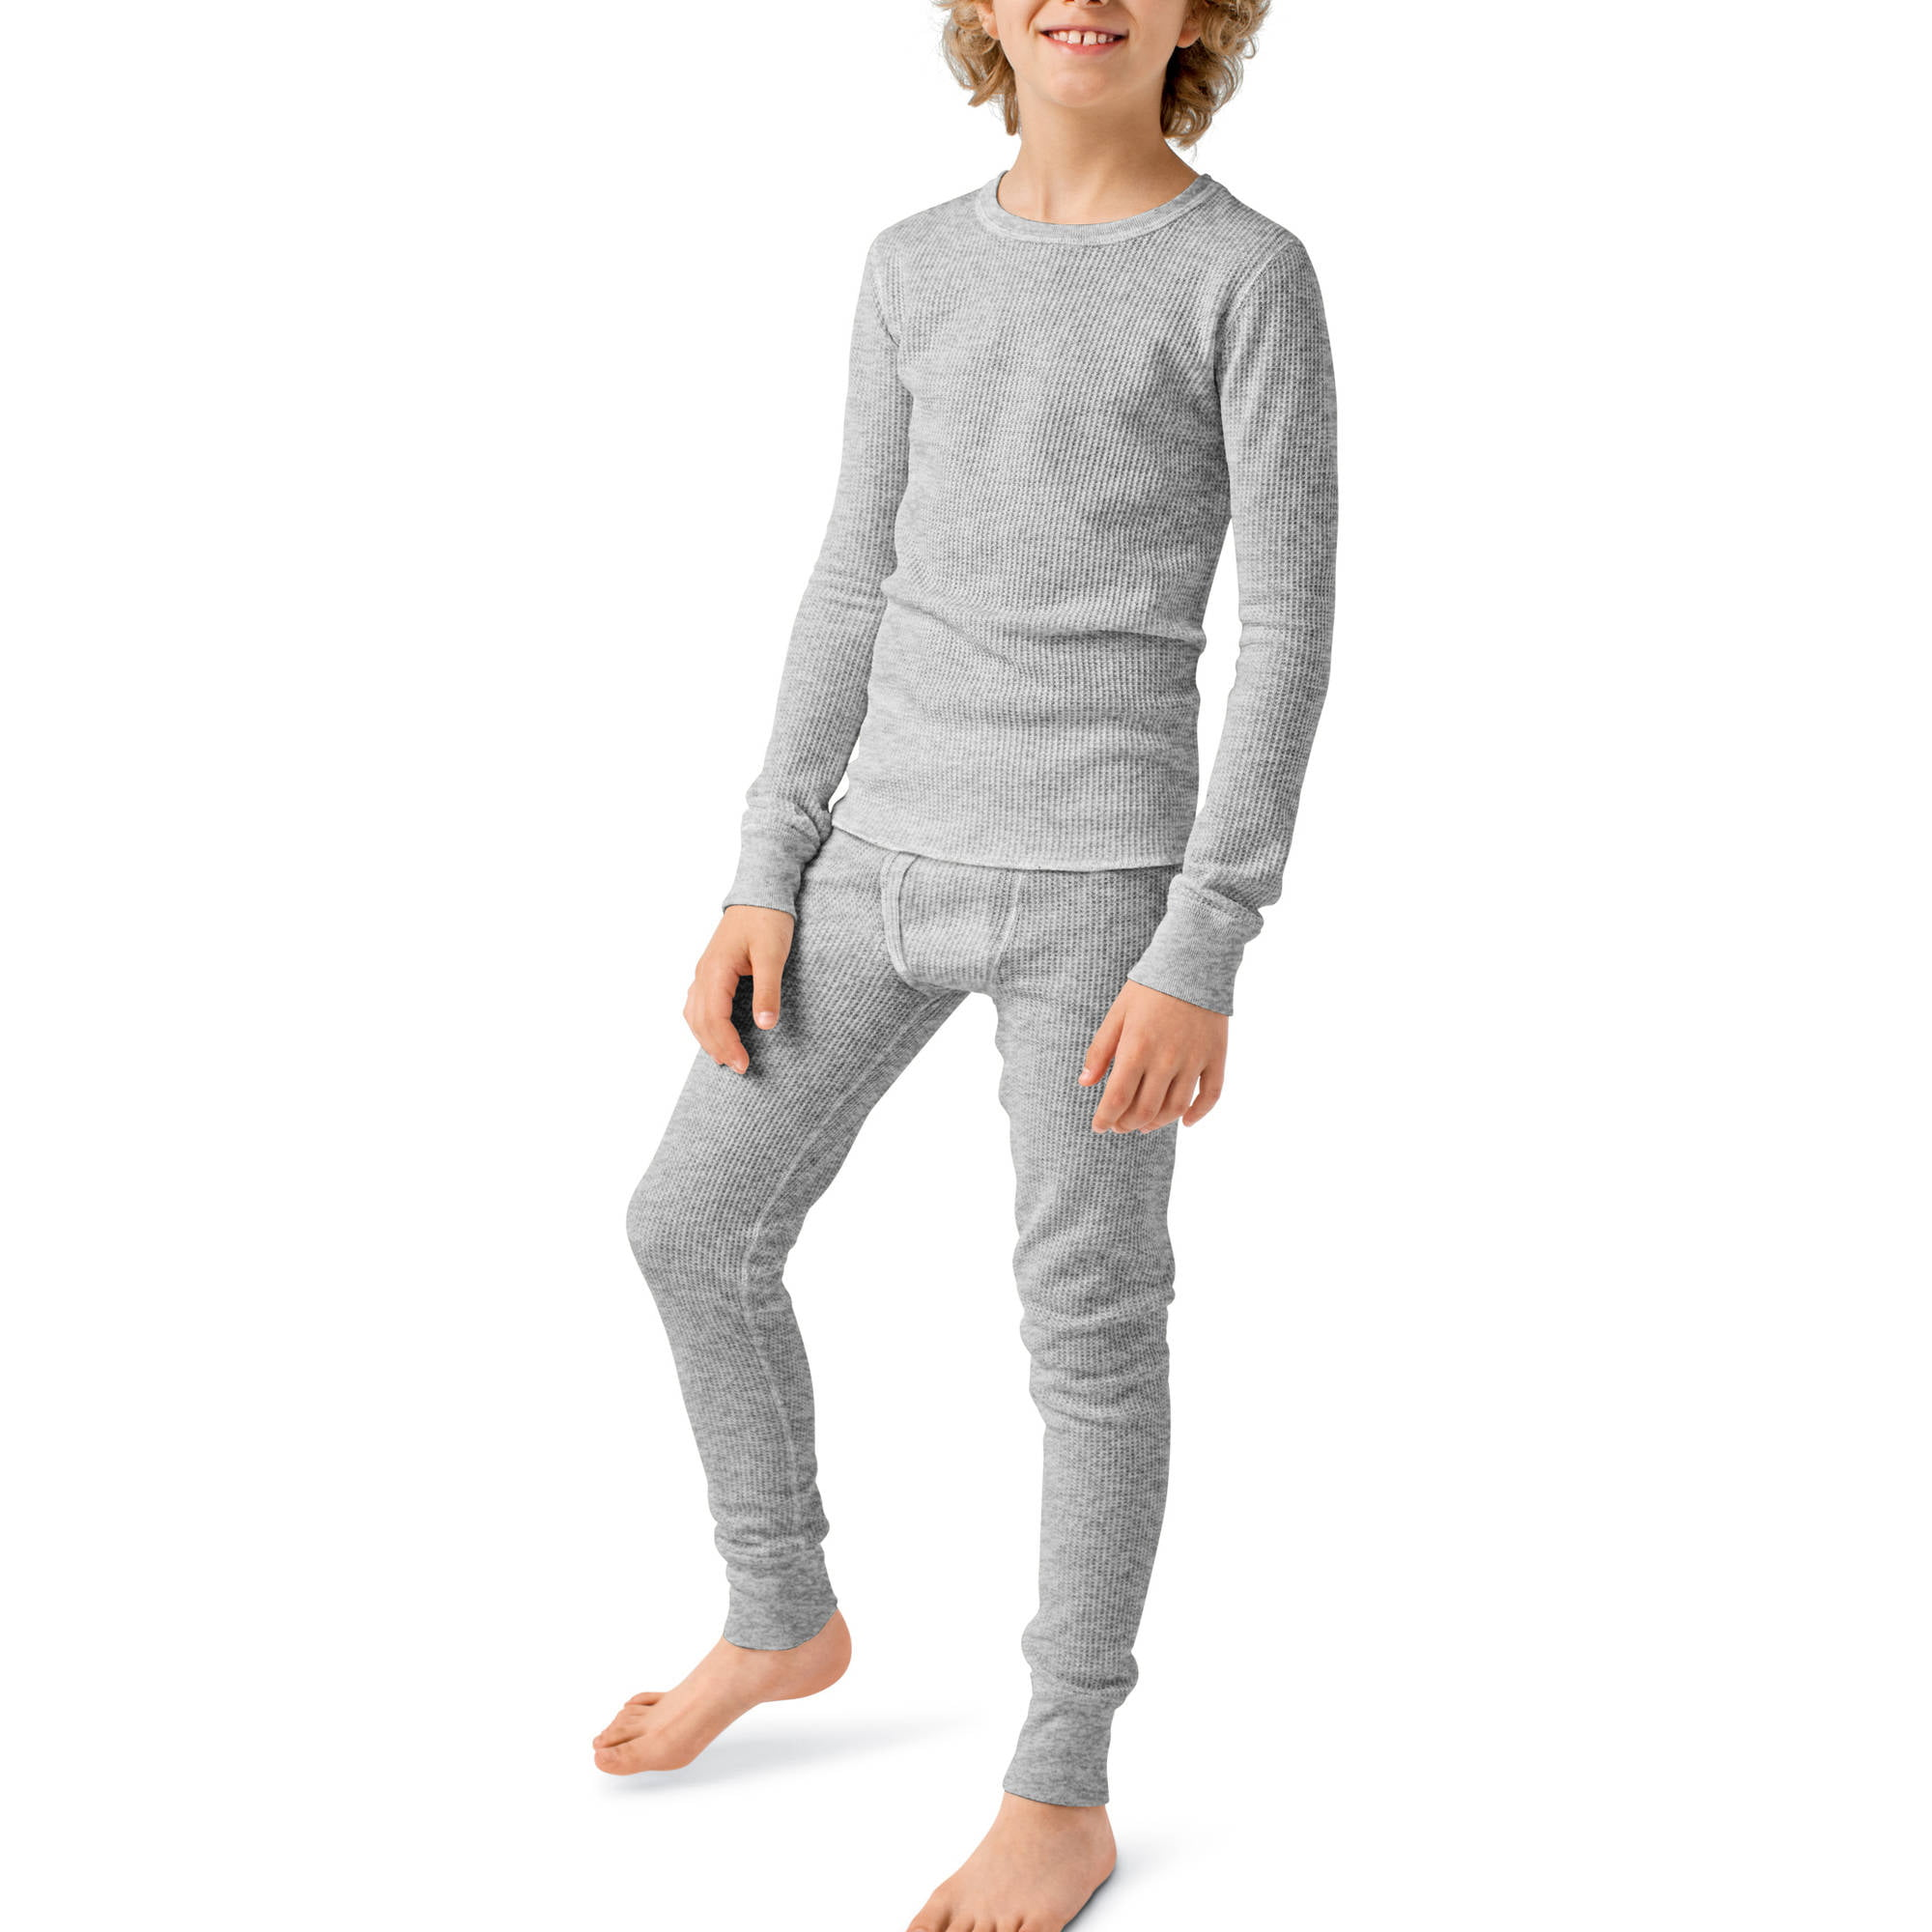 Boys Winter Thermal Underwear Tops Ultra Soft Stretch Cold Gear Long Johns Shirts Size 8